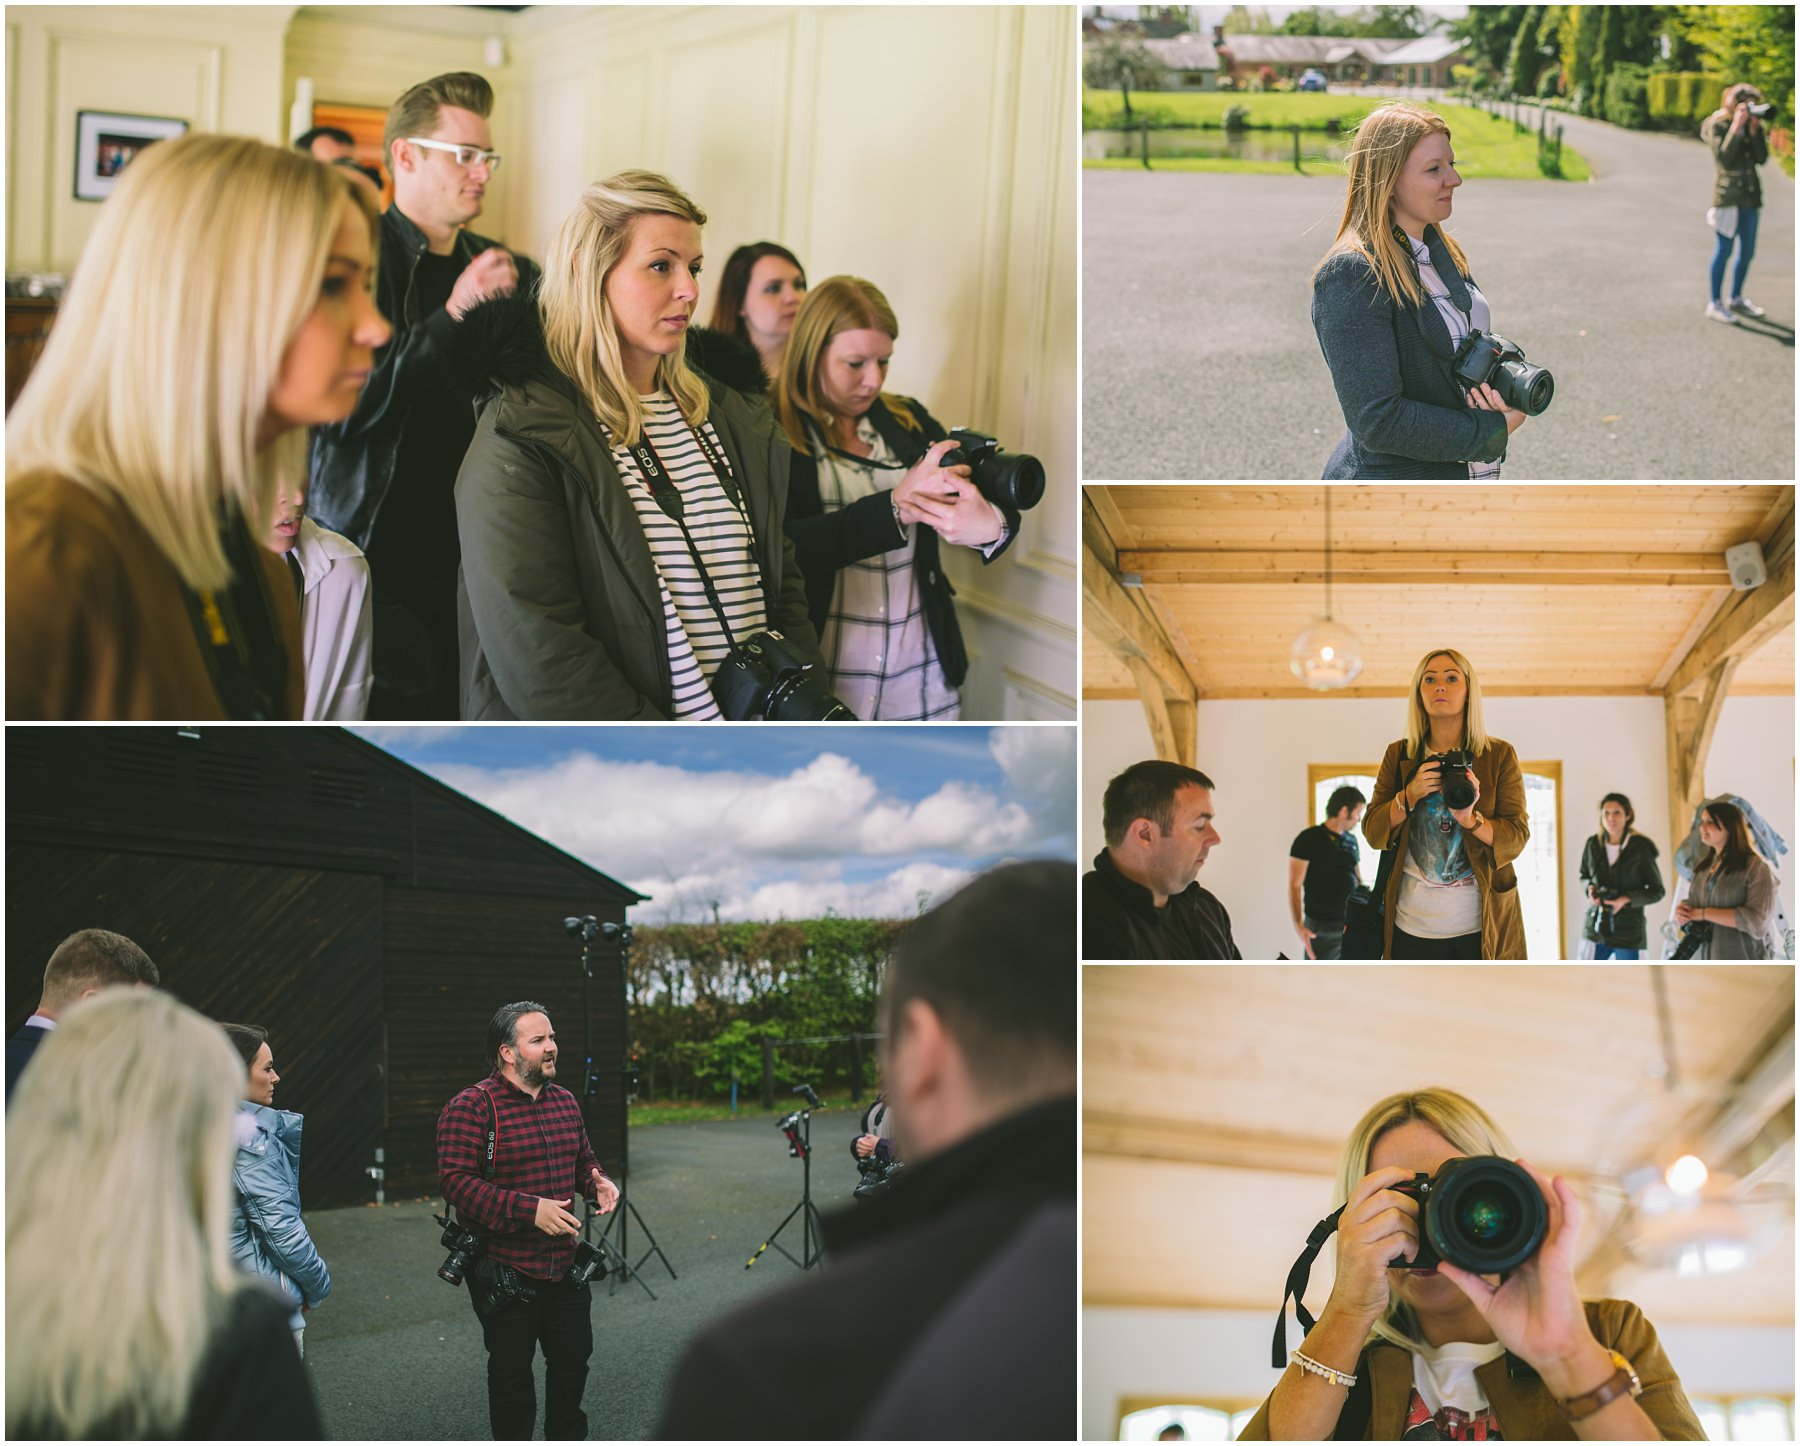 A montage of photographers learning and shooting